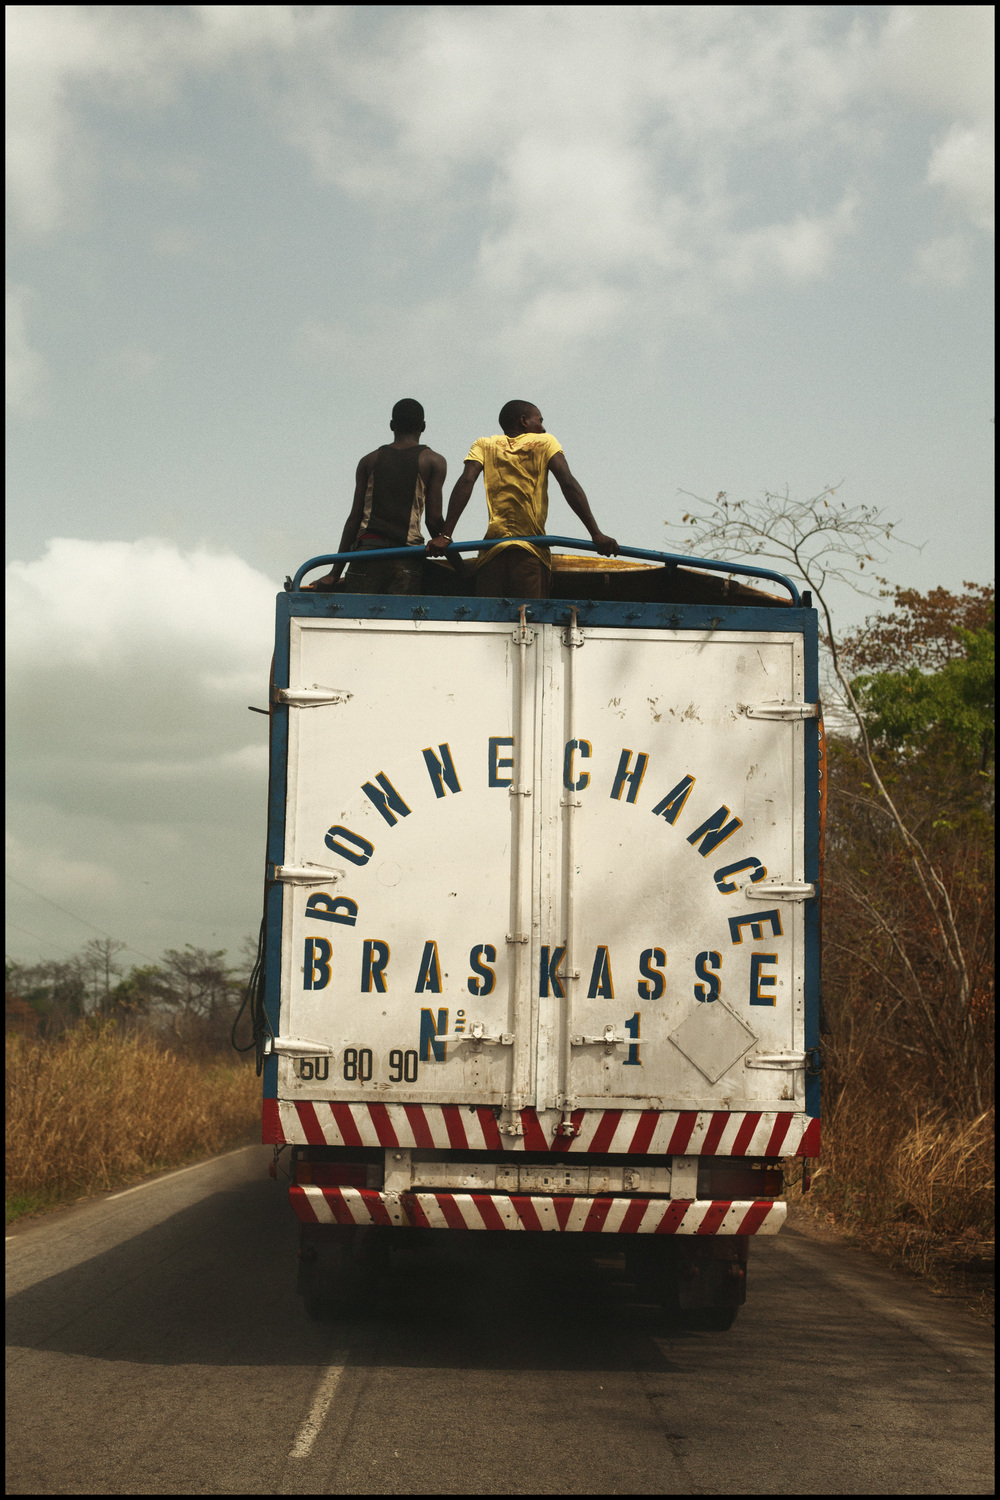 1-30-2012 two young men ride on top of a semi (between Abidjan and Yamassoukro, Ivory Coast).jpg